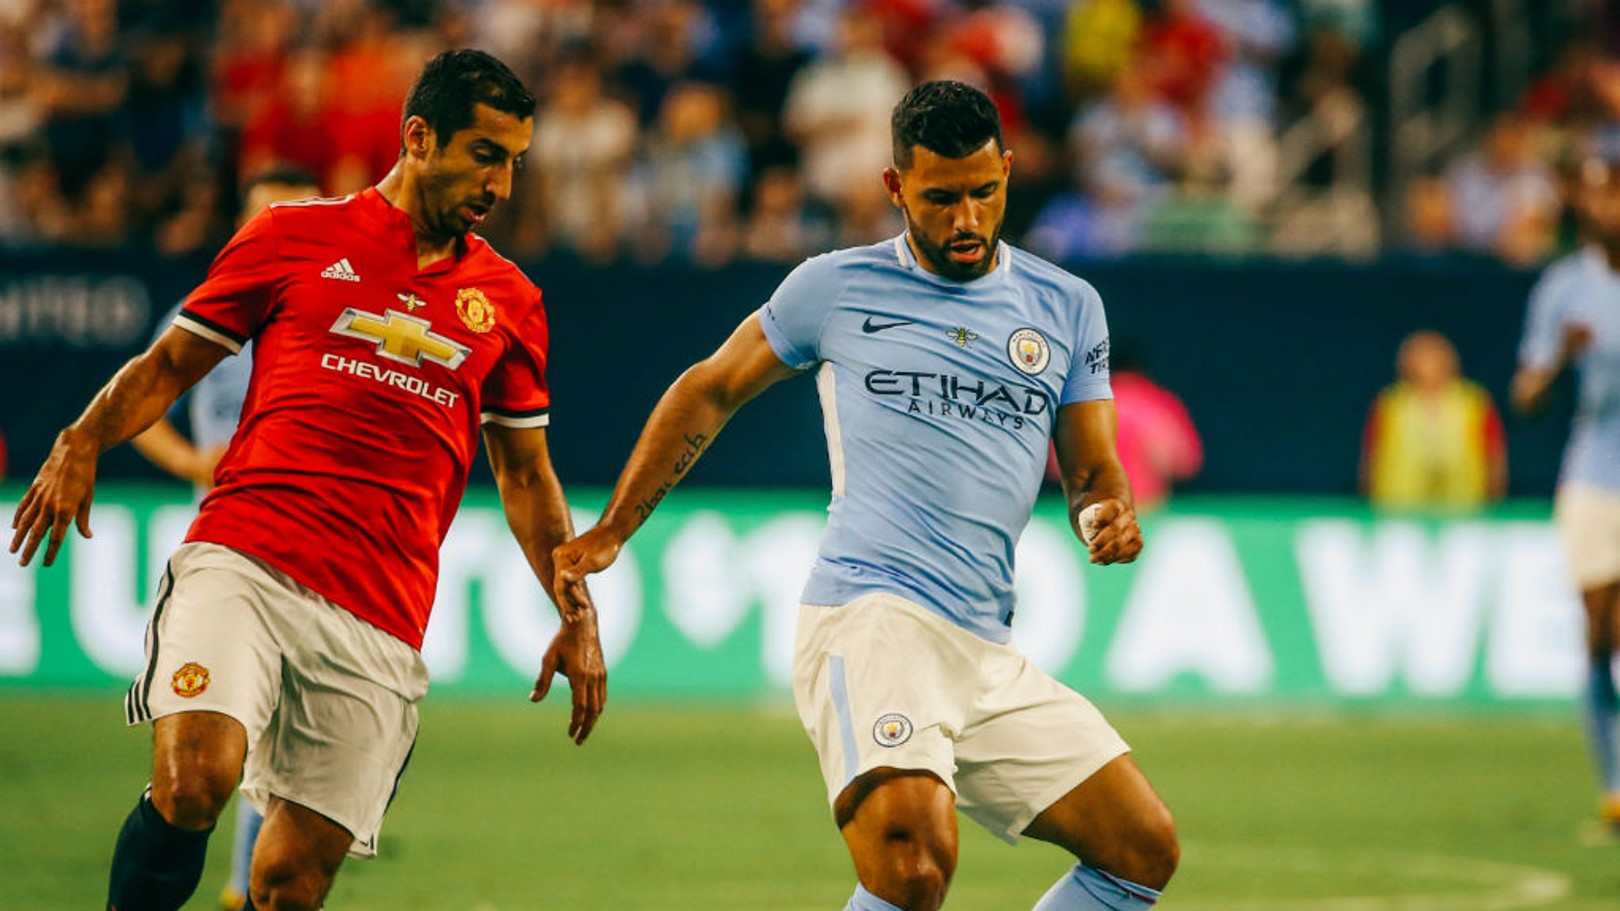 Sergio Aguero (right) in action during the Houston Manchester derby